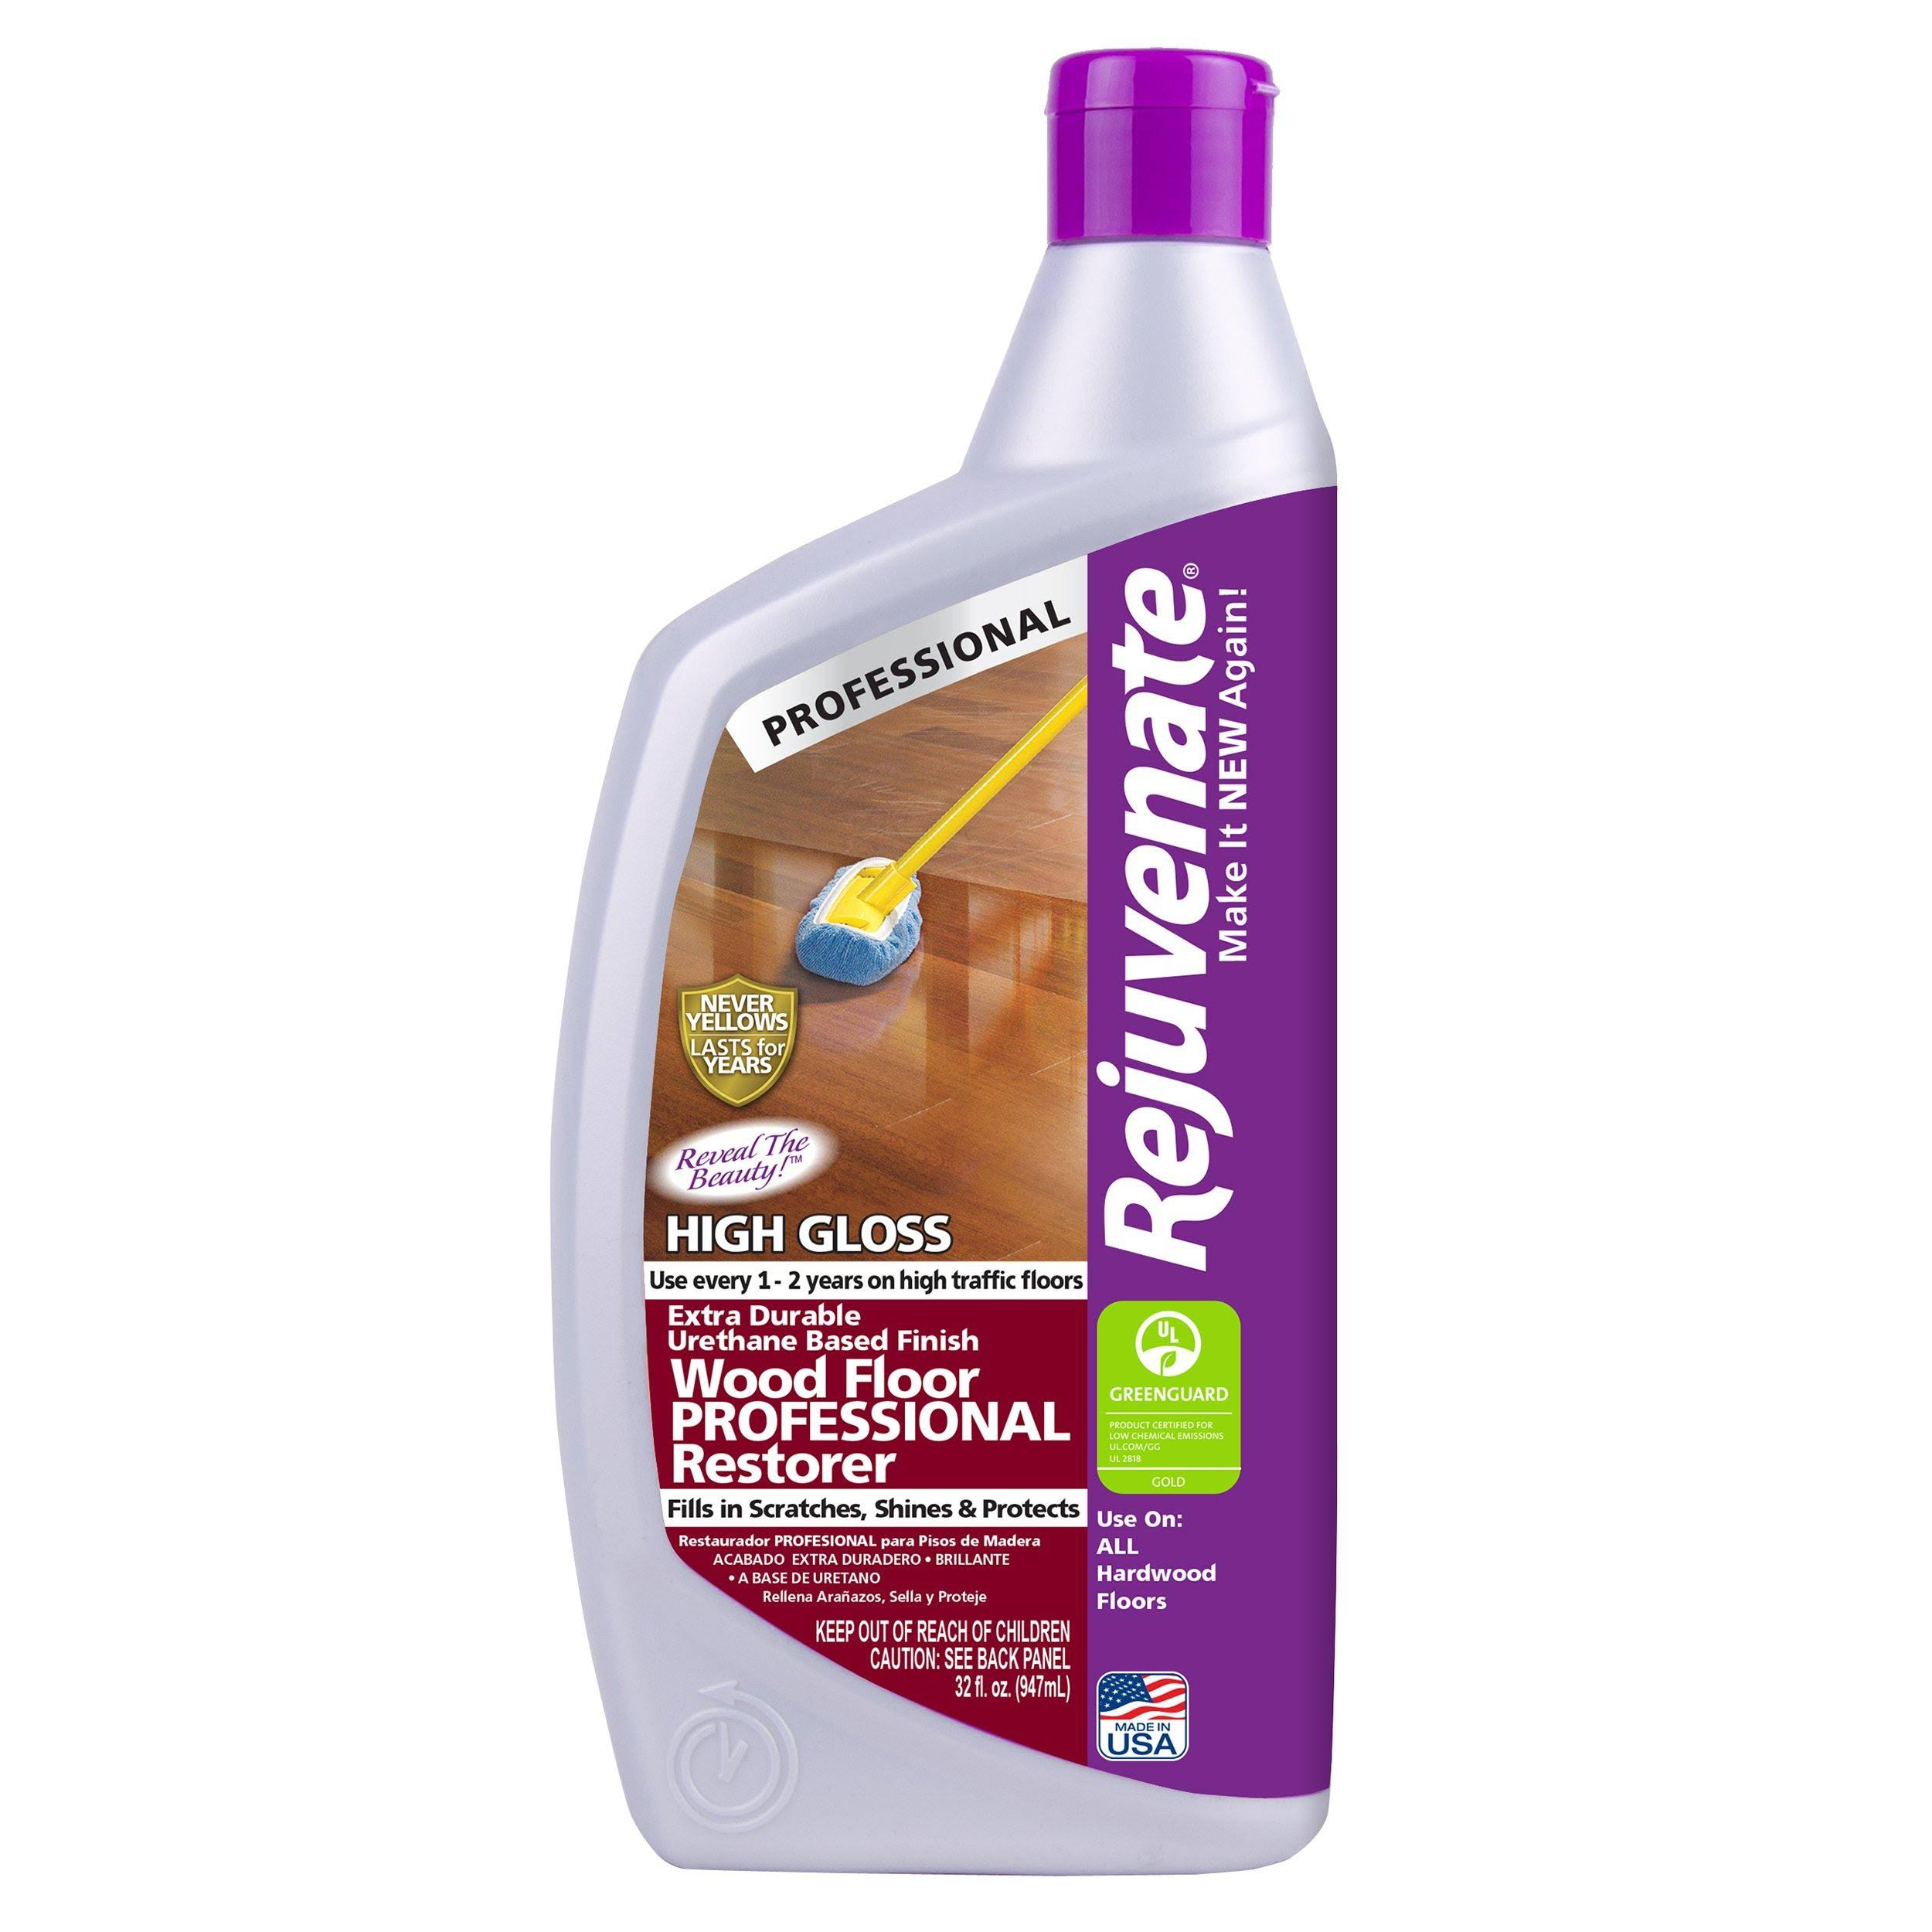 Rejuvenate Professional Wood Floor Restorer - with High Gloss, 950ml